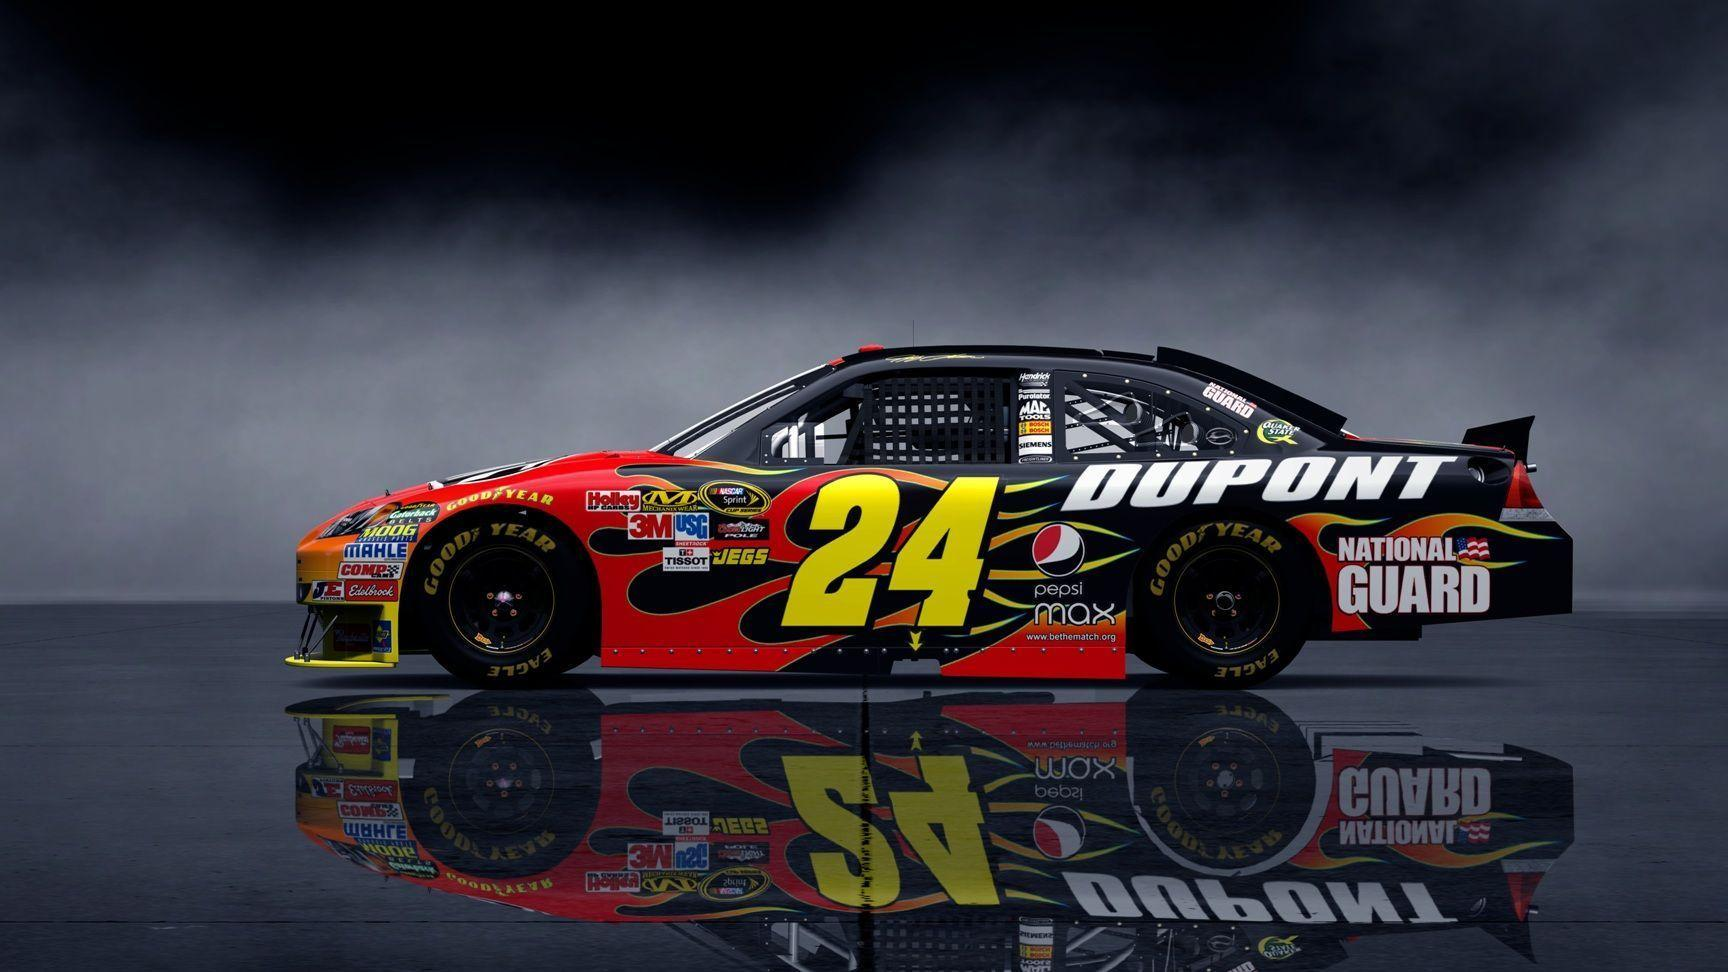 jeff gordon desktop wallpaper - photo #12